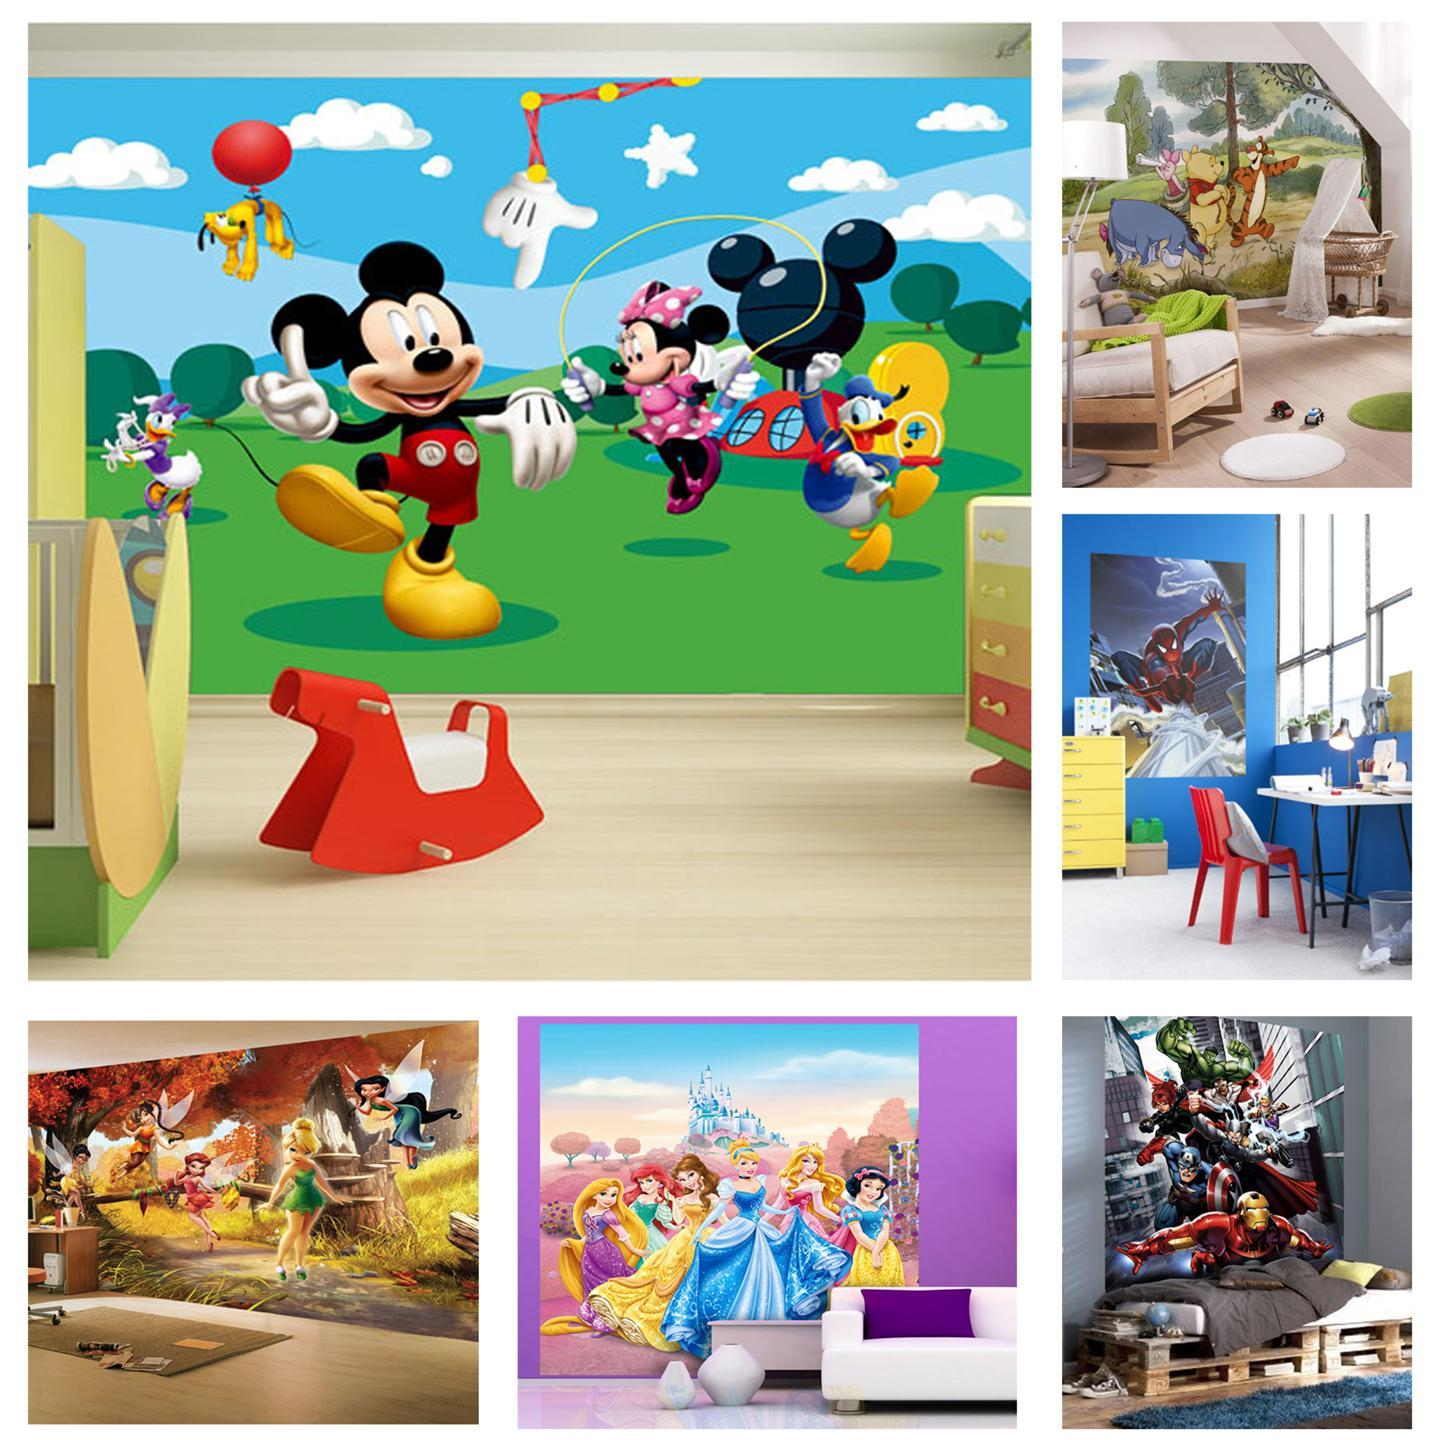 Free download CHILDRENS BEDROOM DISNEY CHARACTER WALLPAPER ...